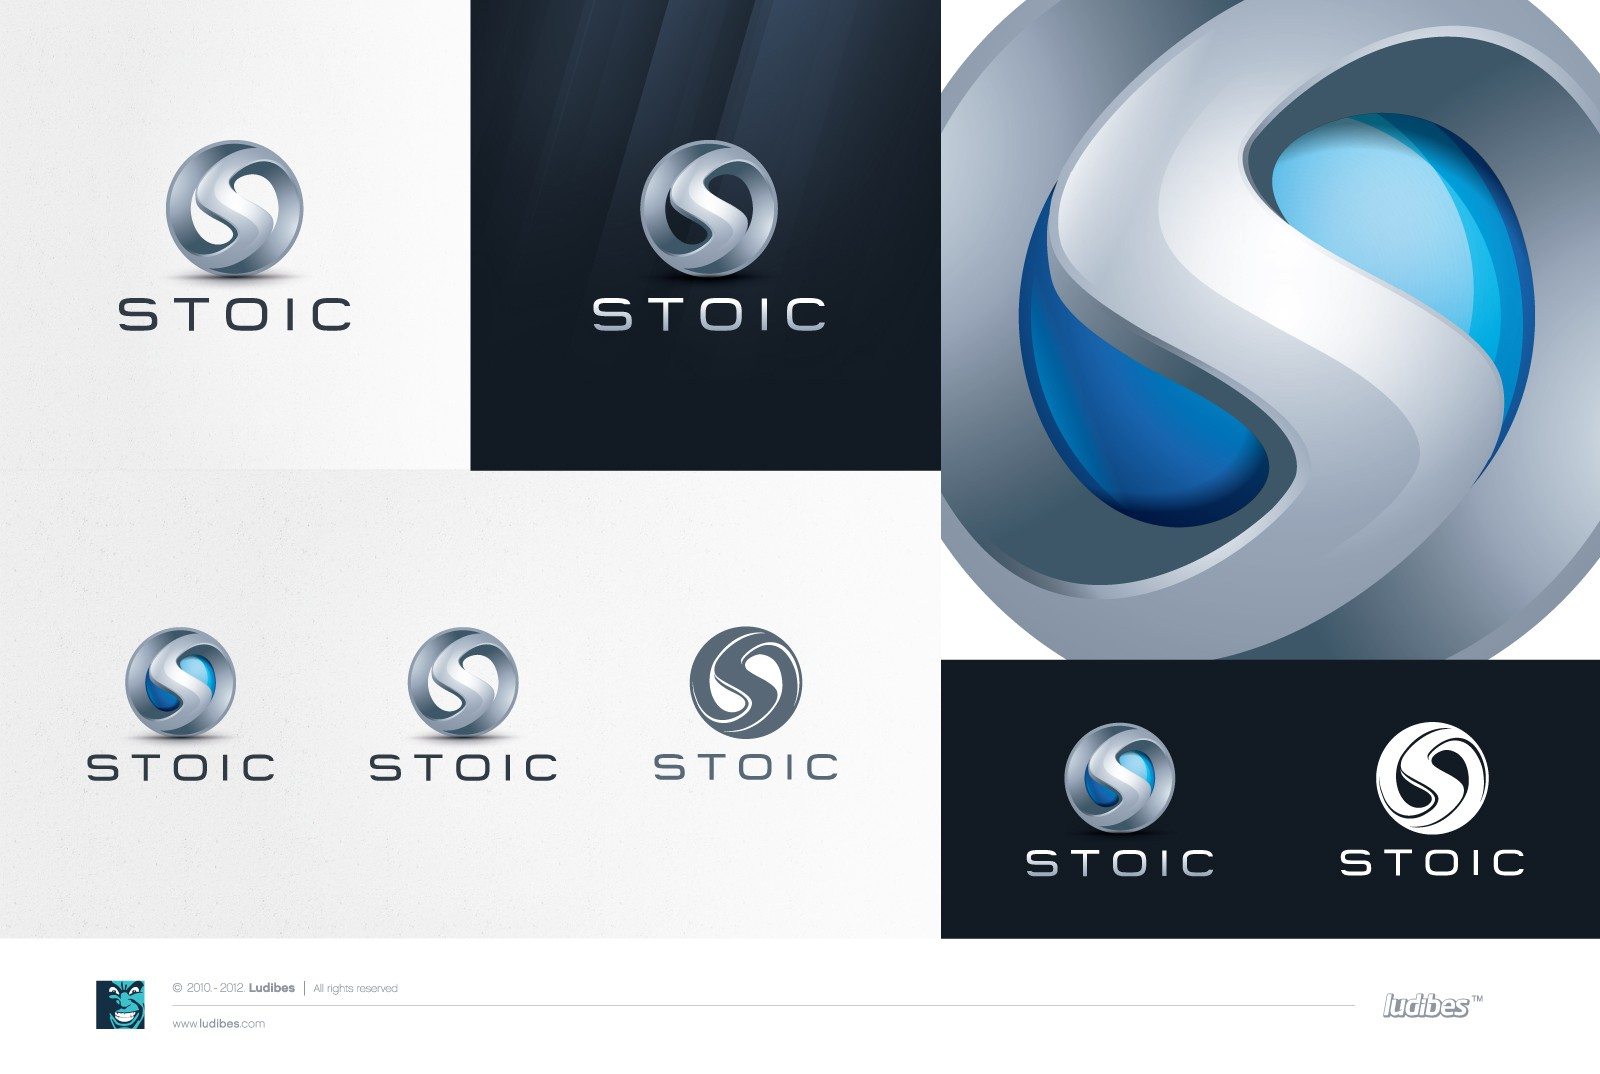 Stoic needs a new logo